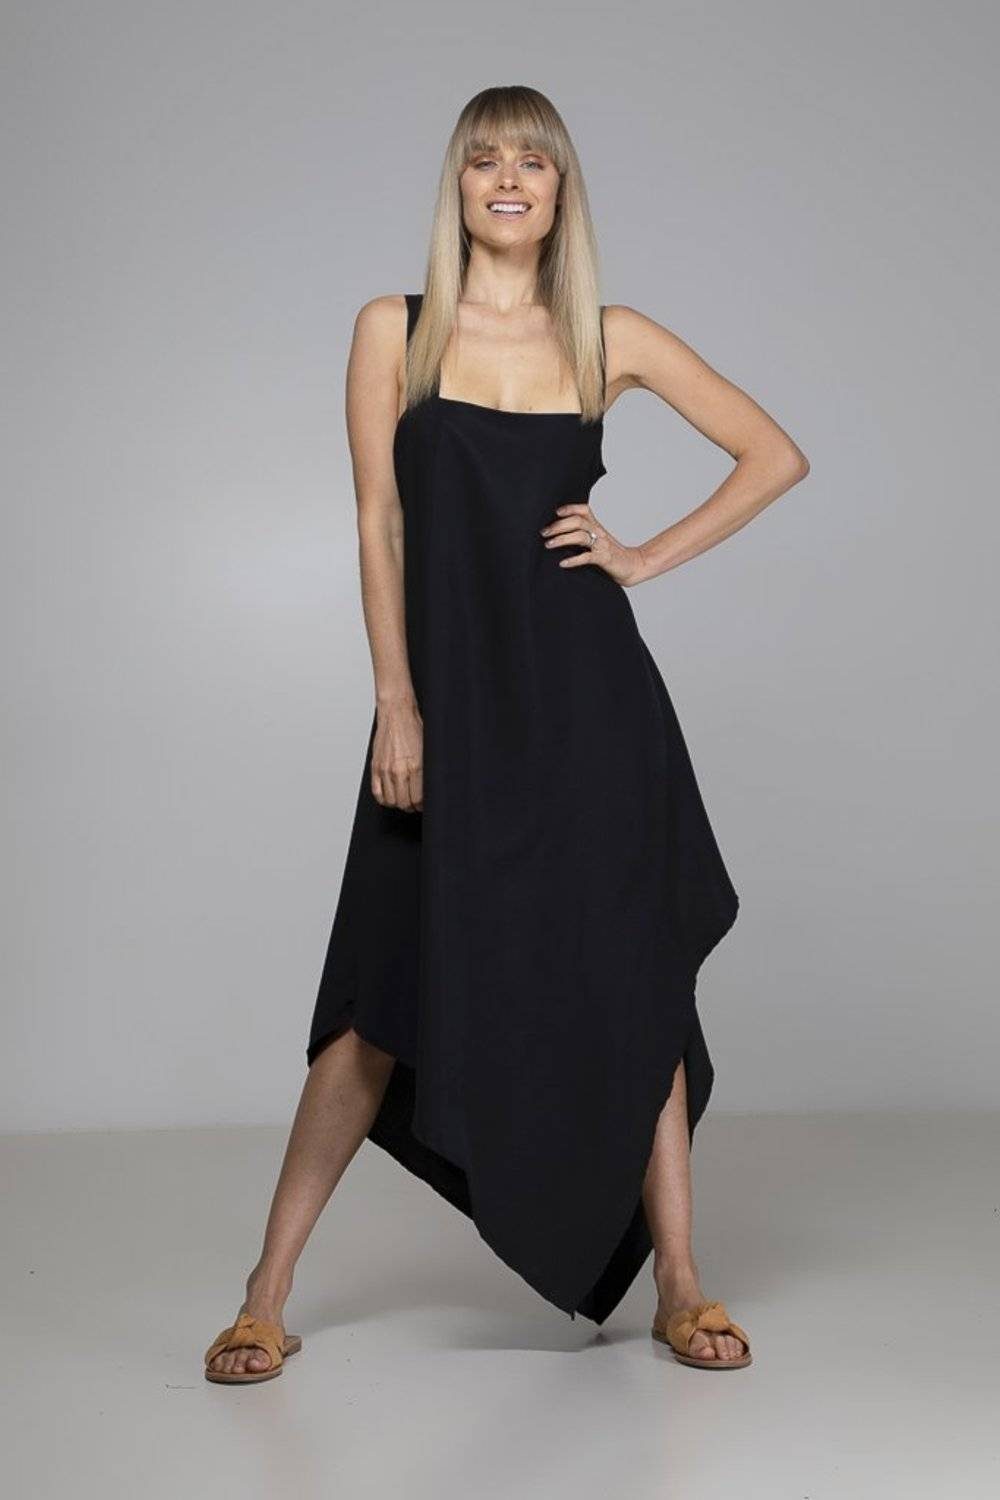 With its relaxed fit & gorgeous open back, the organic bamboo Black Peyton Dress from Indecisive will become your go-to Summer dress.